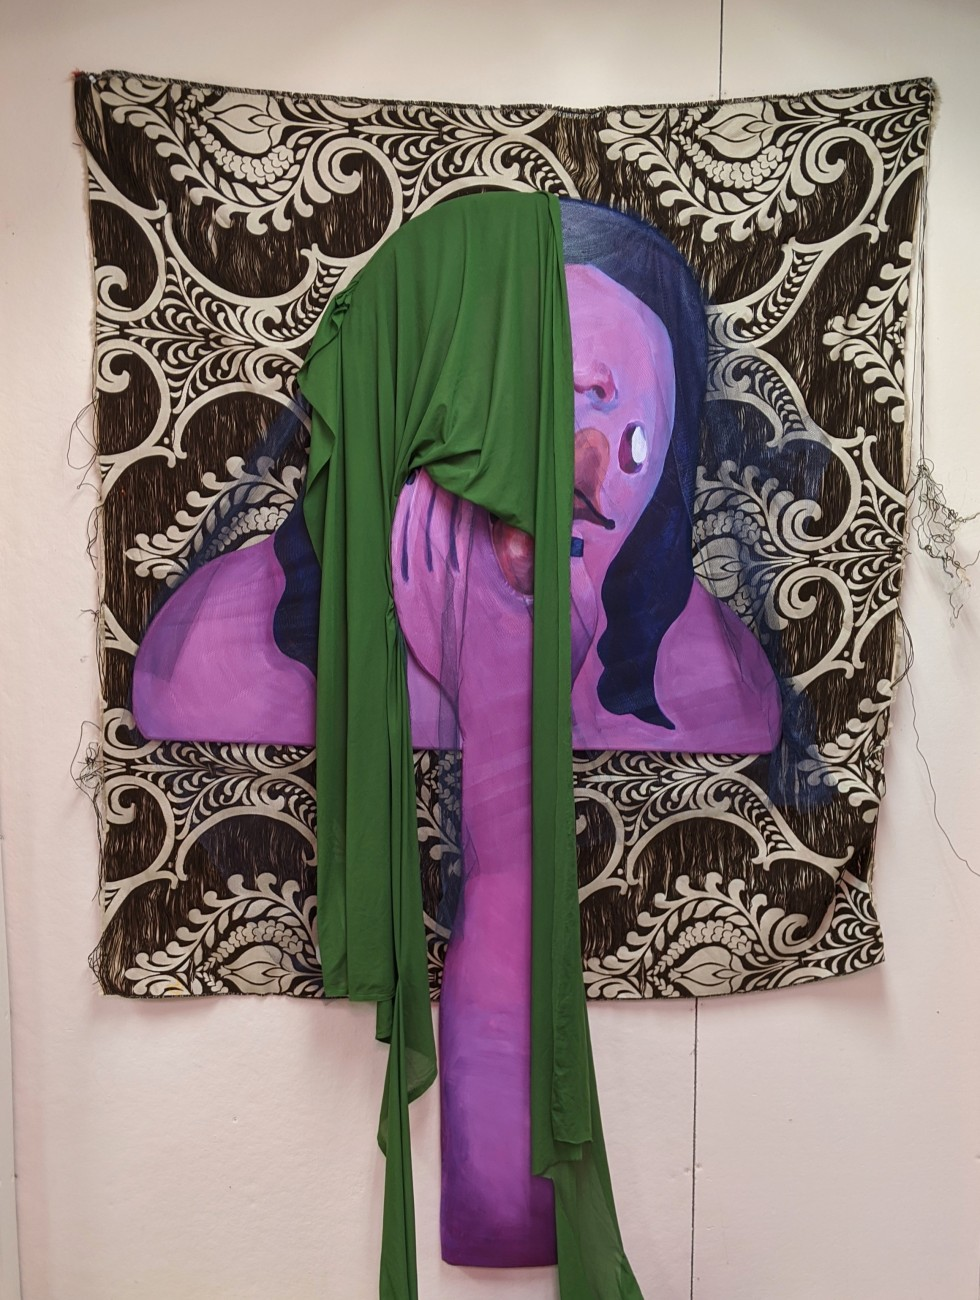 An illustrative, purple arm (made out of shaped and painted plywood) reaches up from the ground, touching a face that is veiled by mesh and green fabric. Underneath this bust is a tan, paisley-patterned tapestry with strings and fibers fraying on the edge